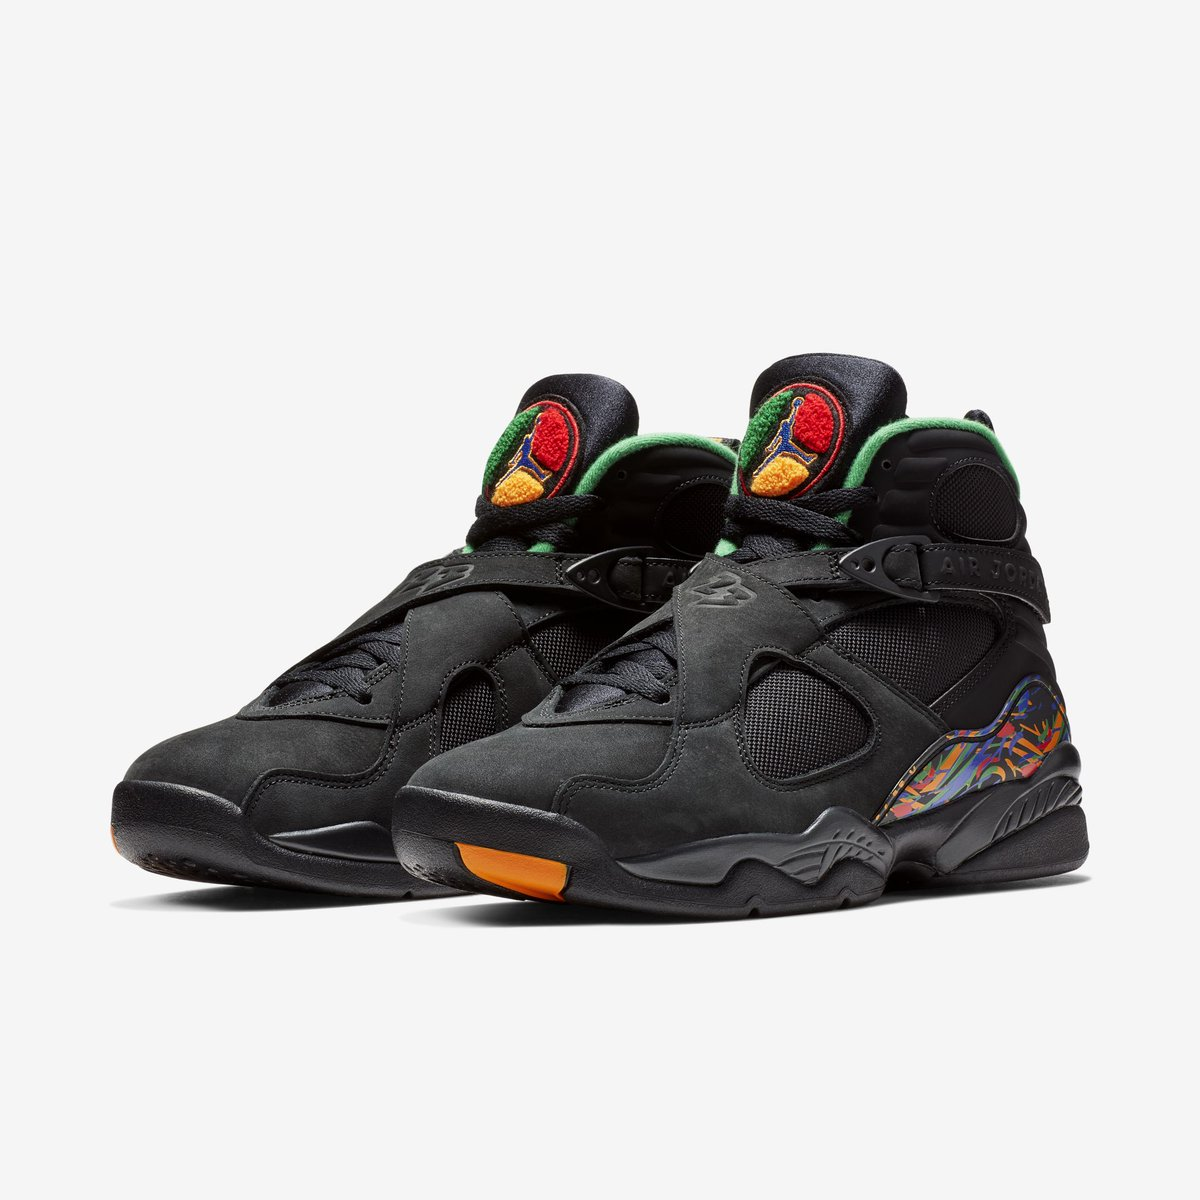 check out 794b8 8e4c5 SneakerScouts on Twitter: